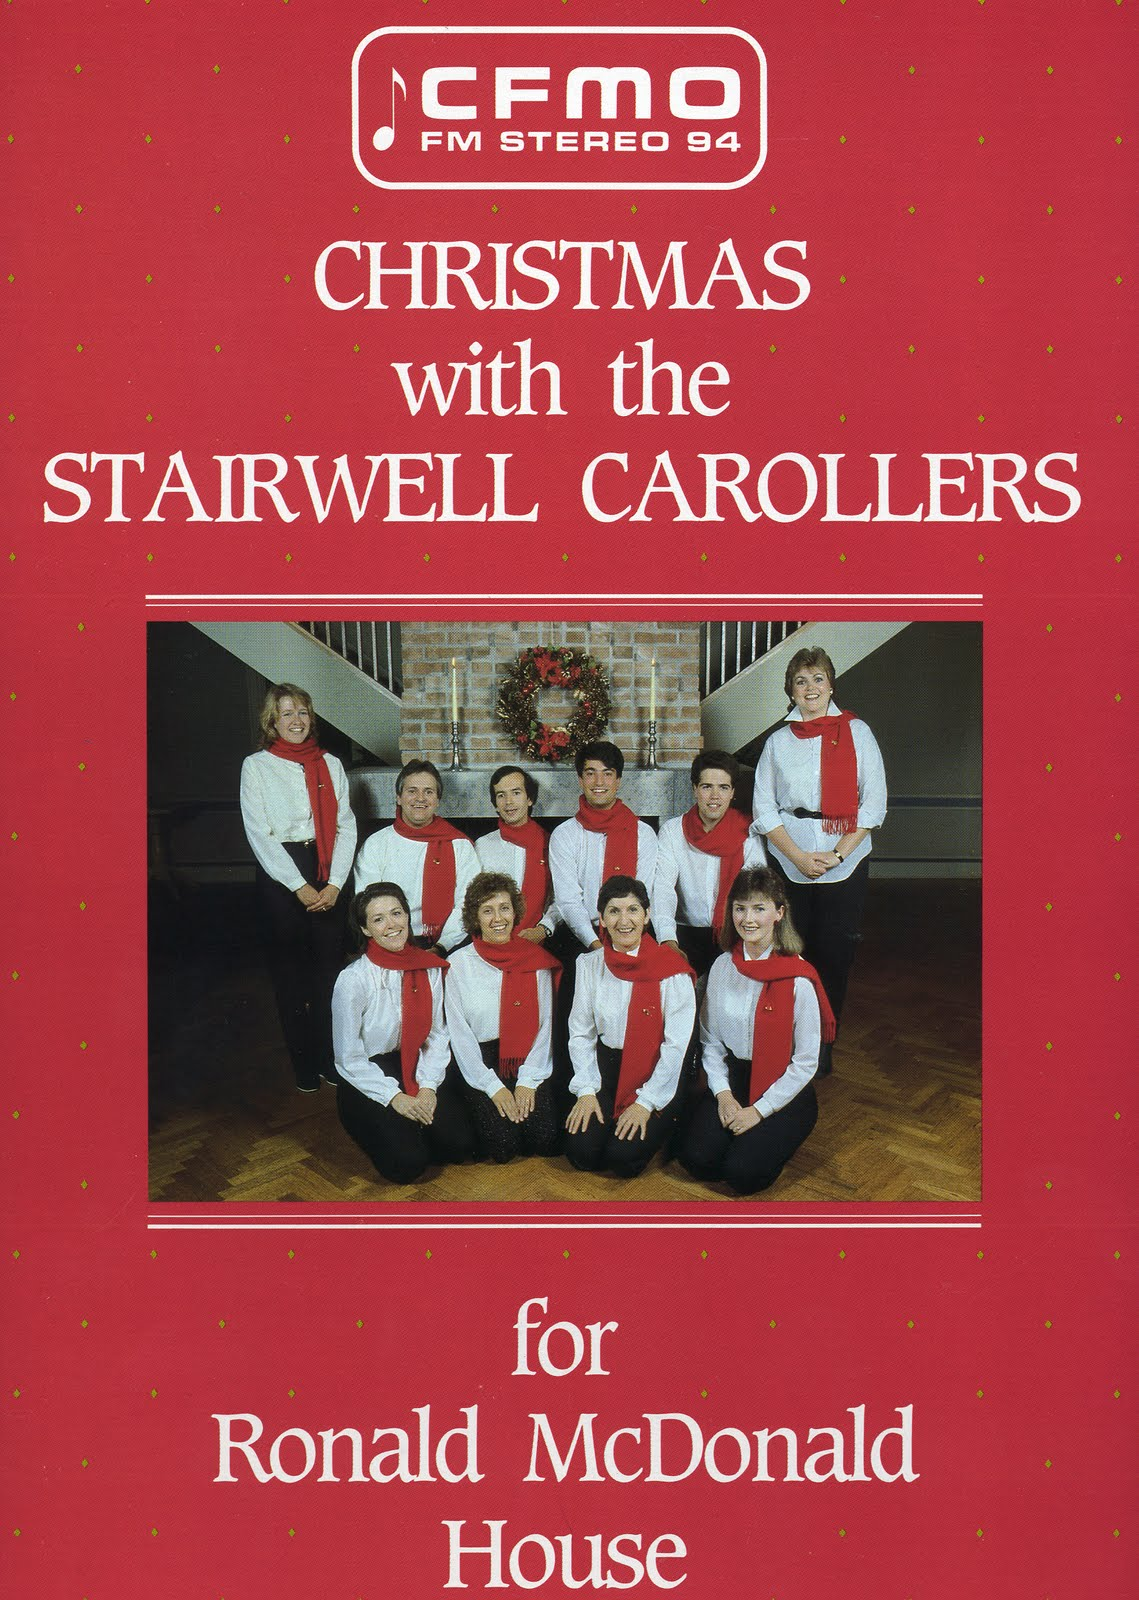 The Stairwell Carollers on Vinyl -- available on Ebay and in a second hand store near you